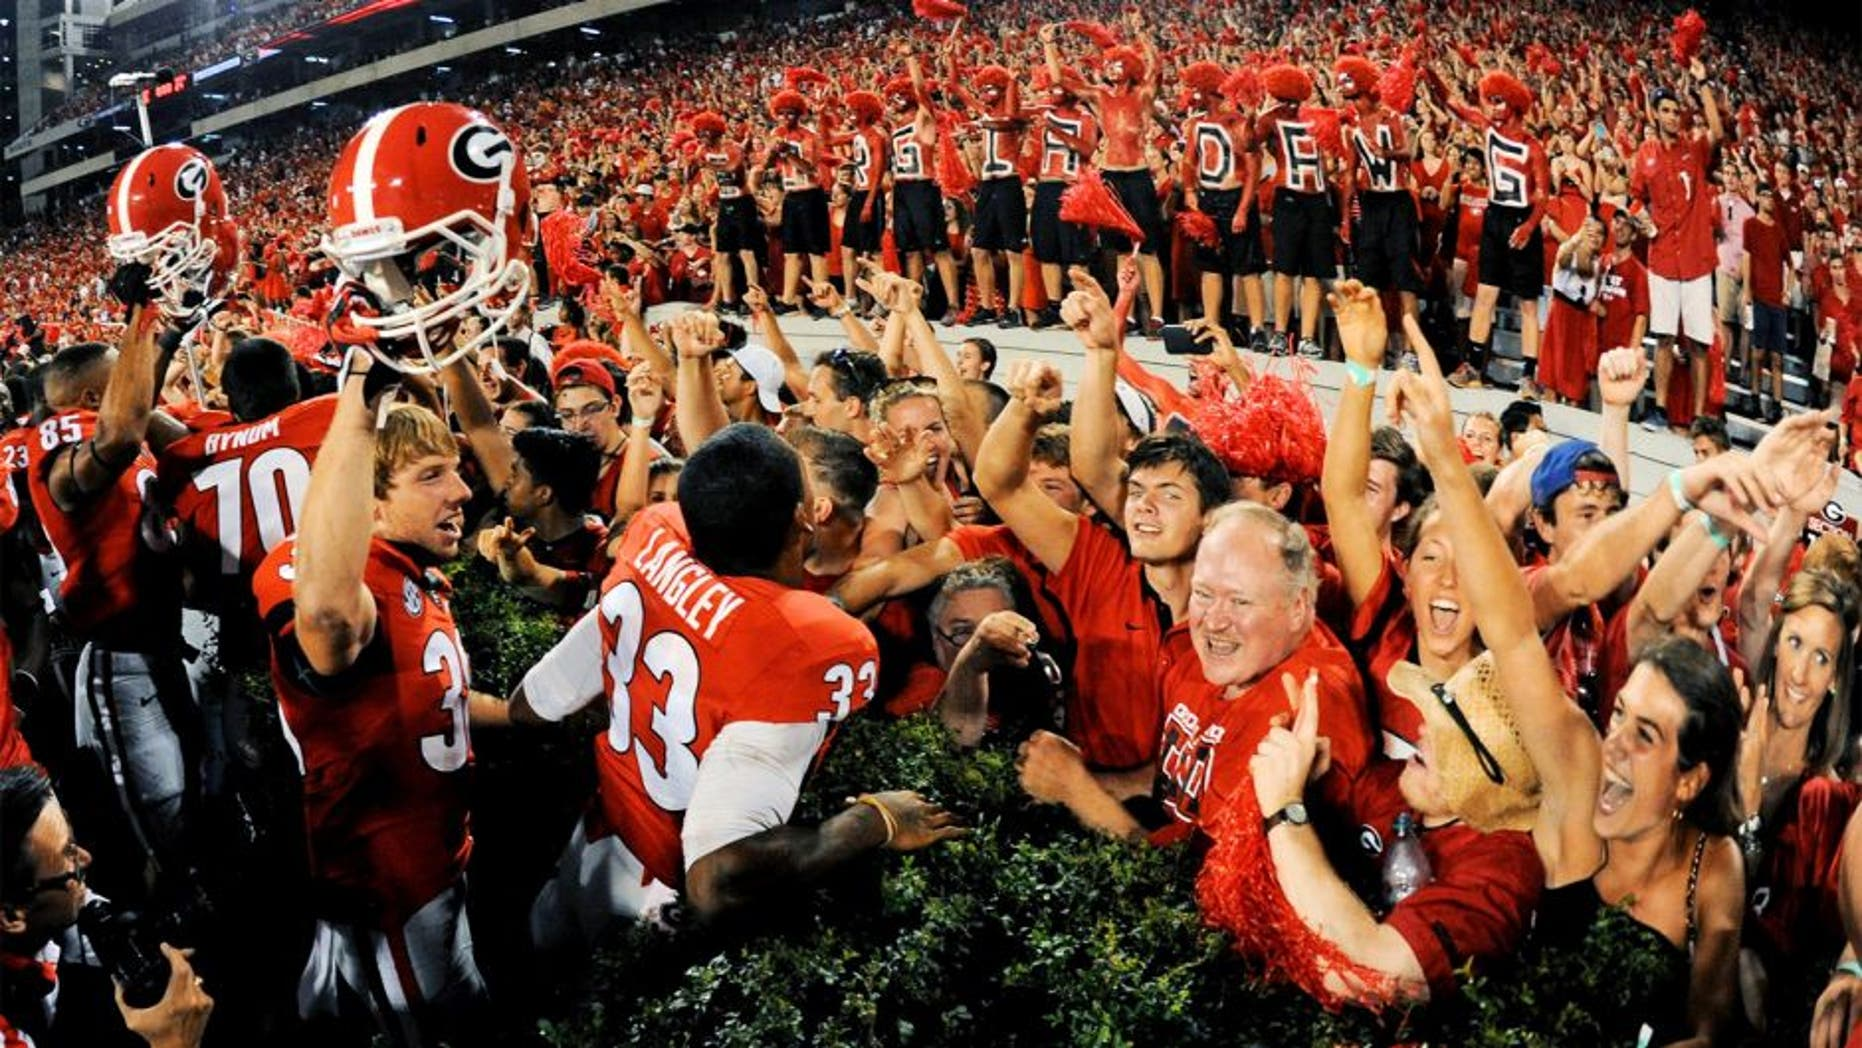 Aug 30, 2014; Athens, GA, USA; Georgia Bulldogs players and fans react after defeating the Clemson Tigers at Sanford Stadium. Georgia defeated Clemson 45-21. Mandatory Credit: Dale Zanine-USA TODAY Sports